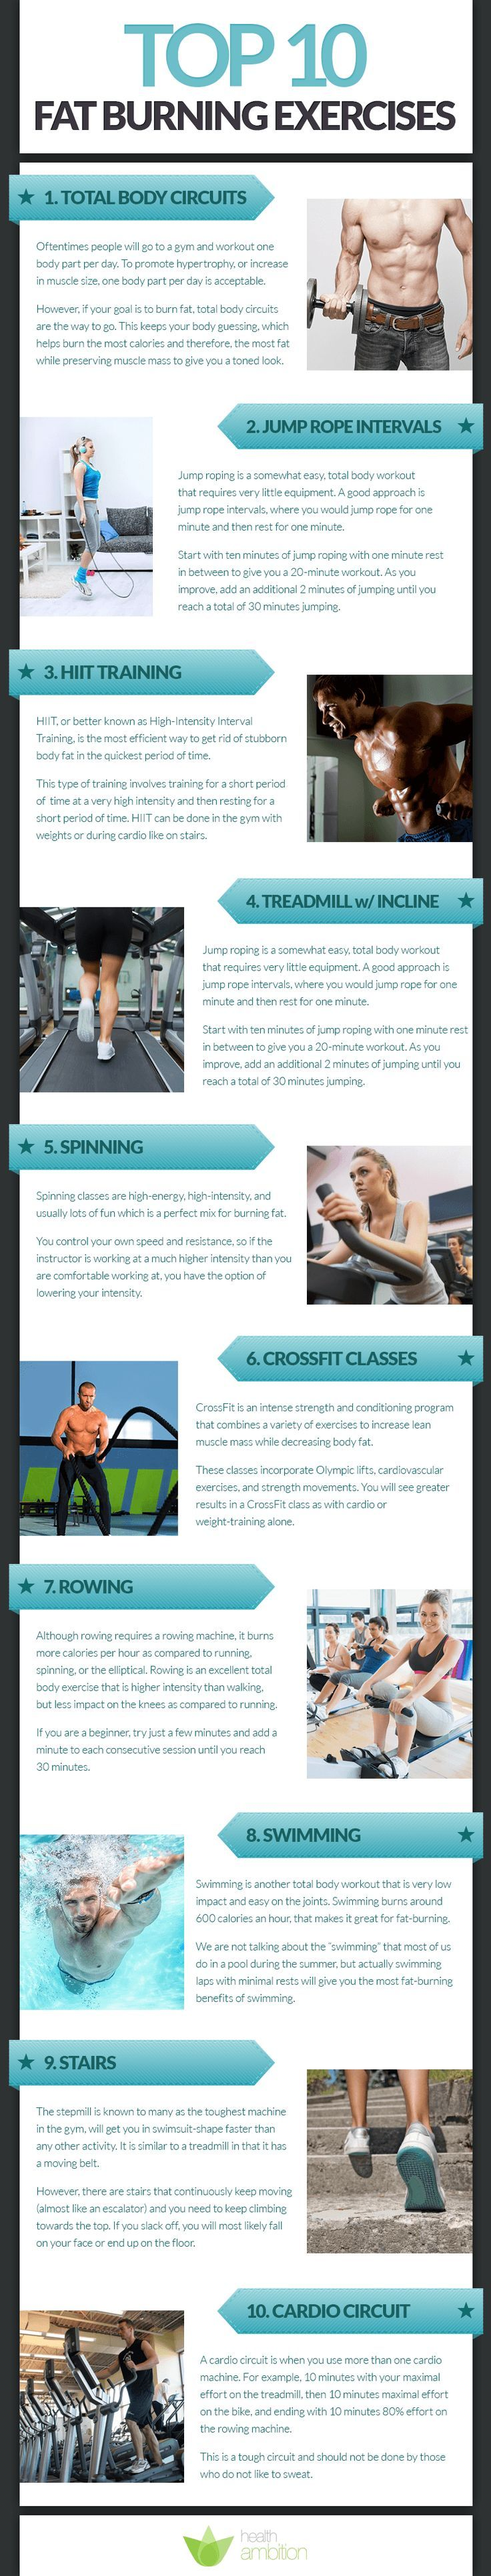 Fat Burning Exercises For a Healthy Lifestyle | Fitness Exercises